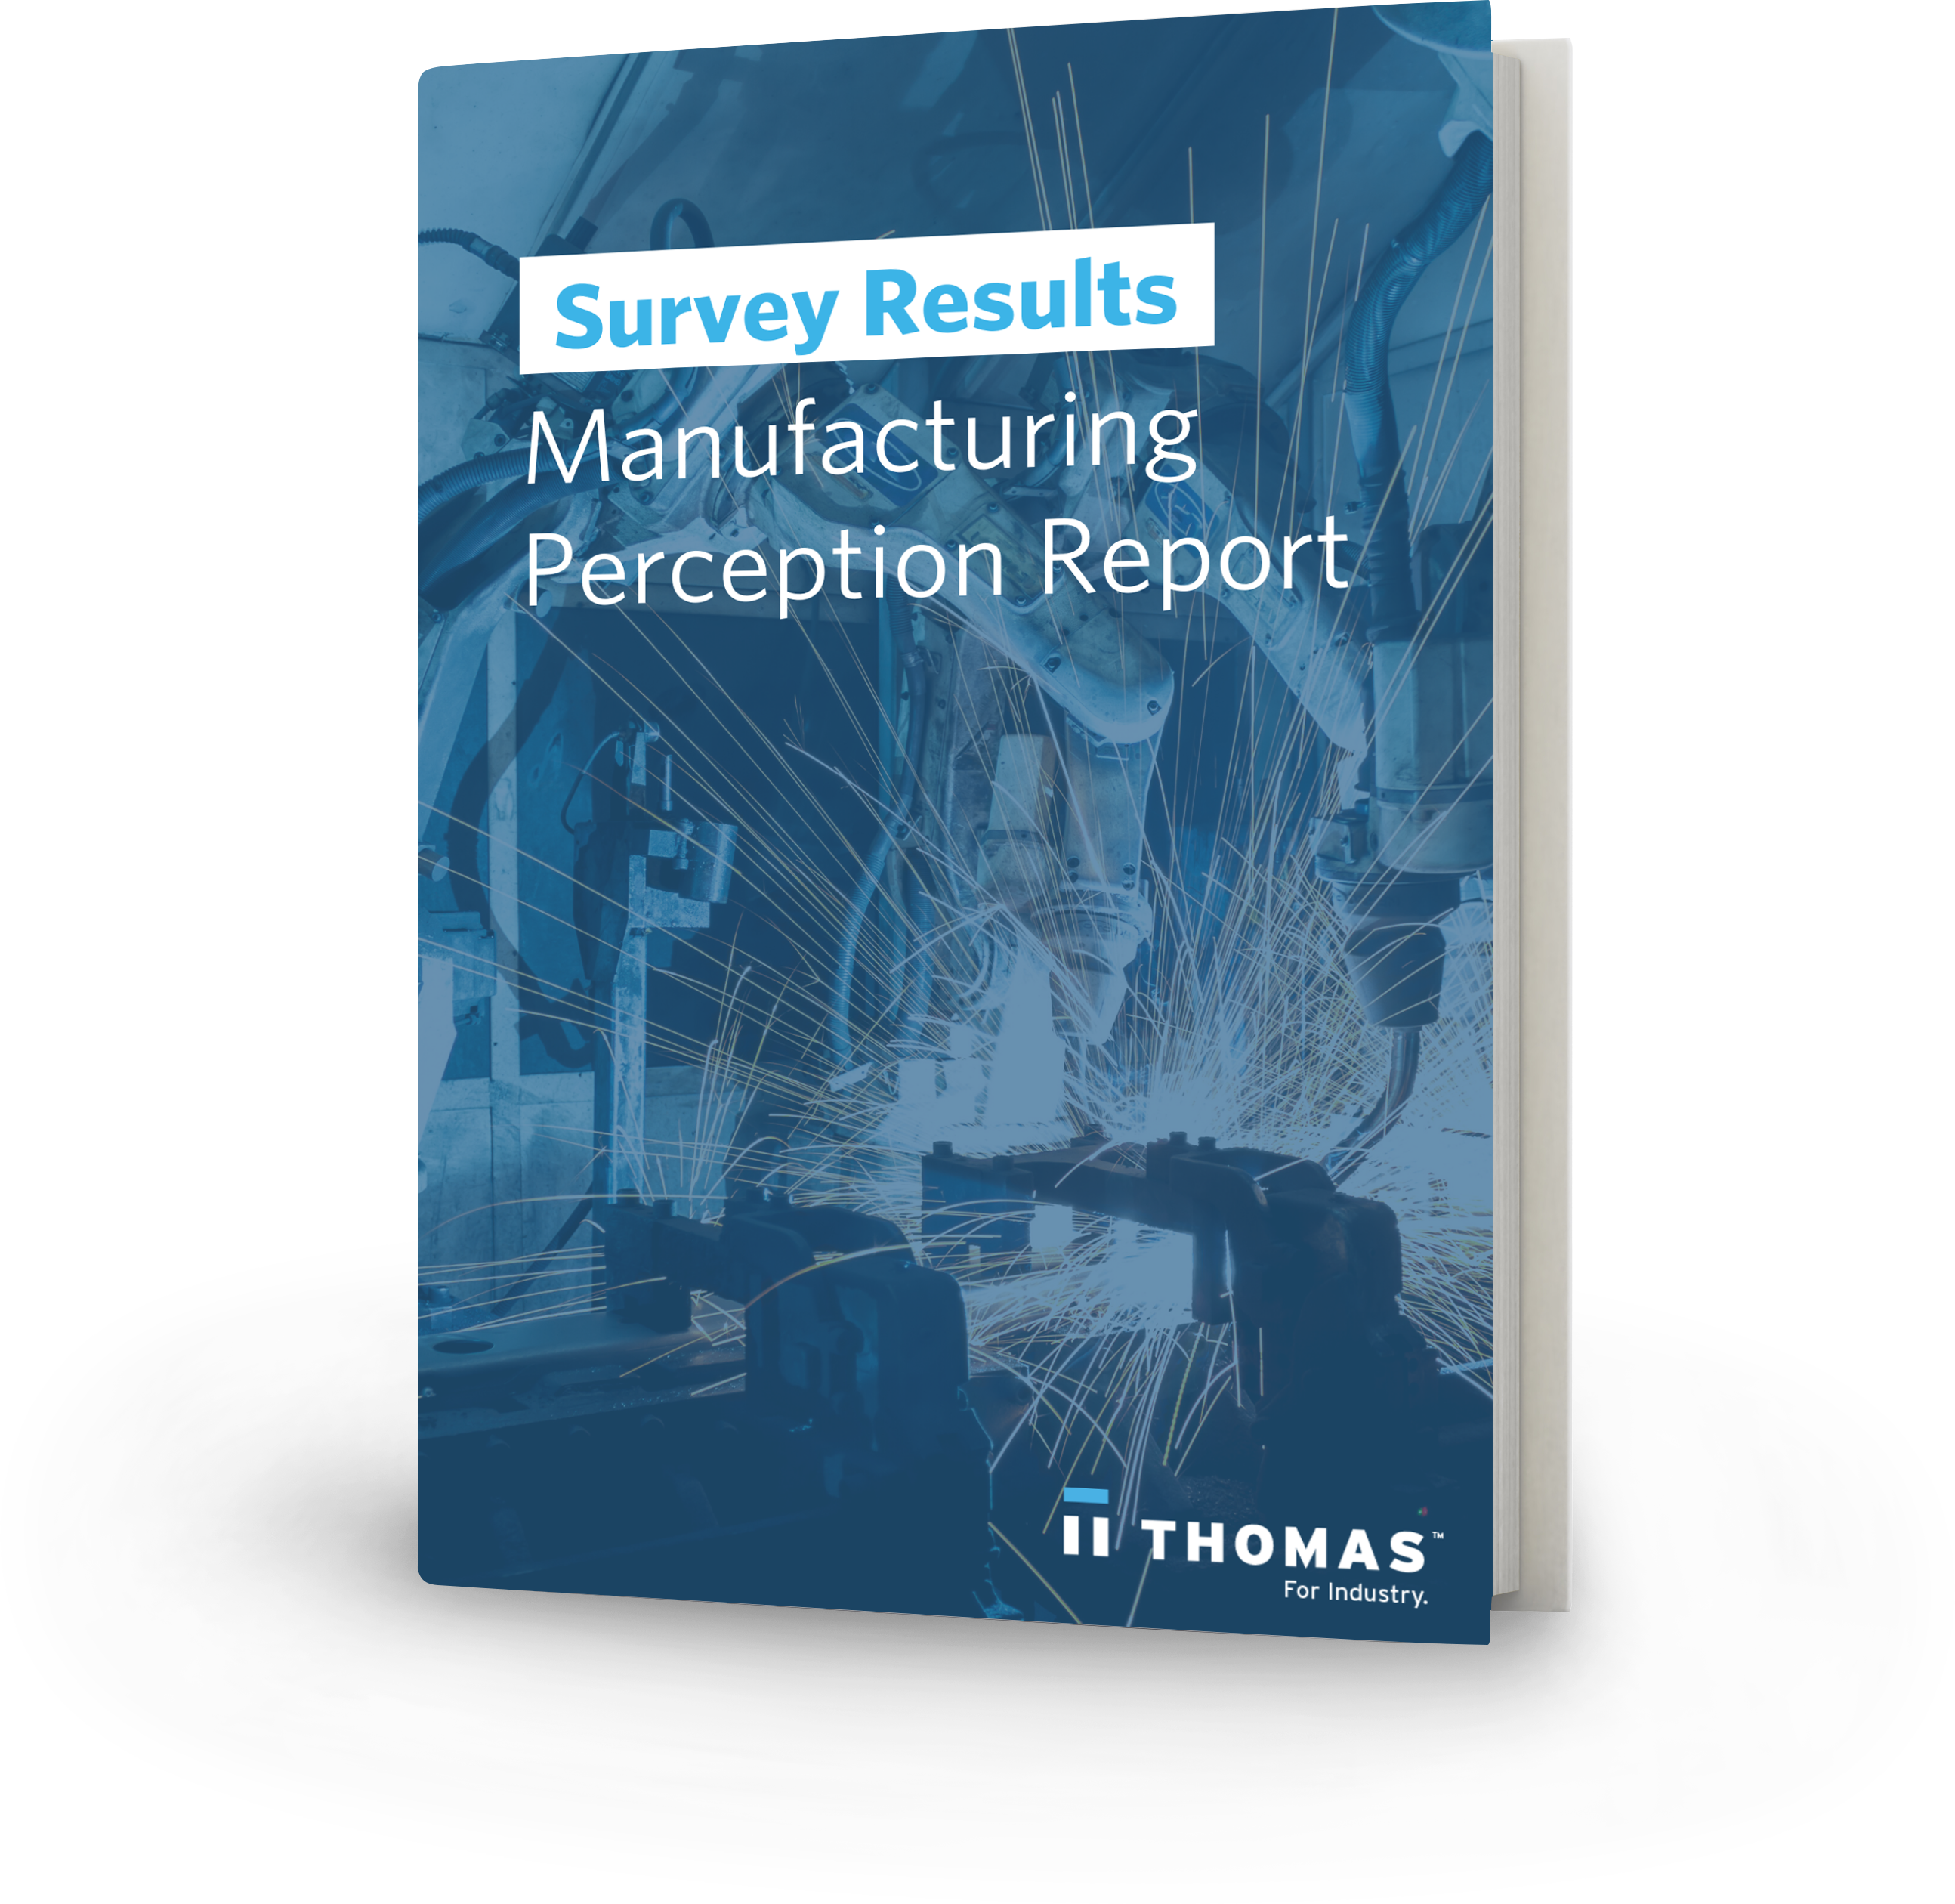 Manufacturing Perception Report Survey Results